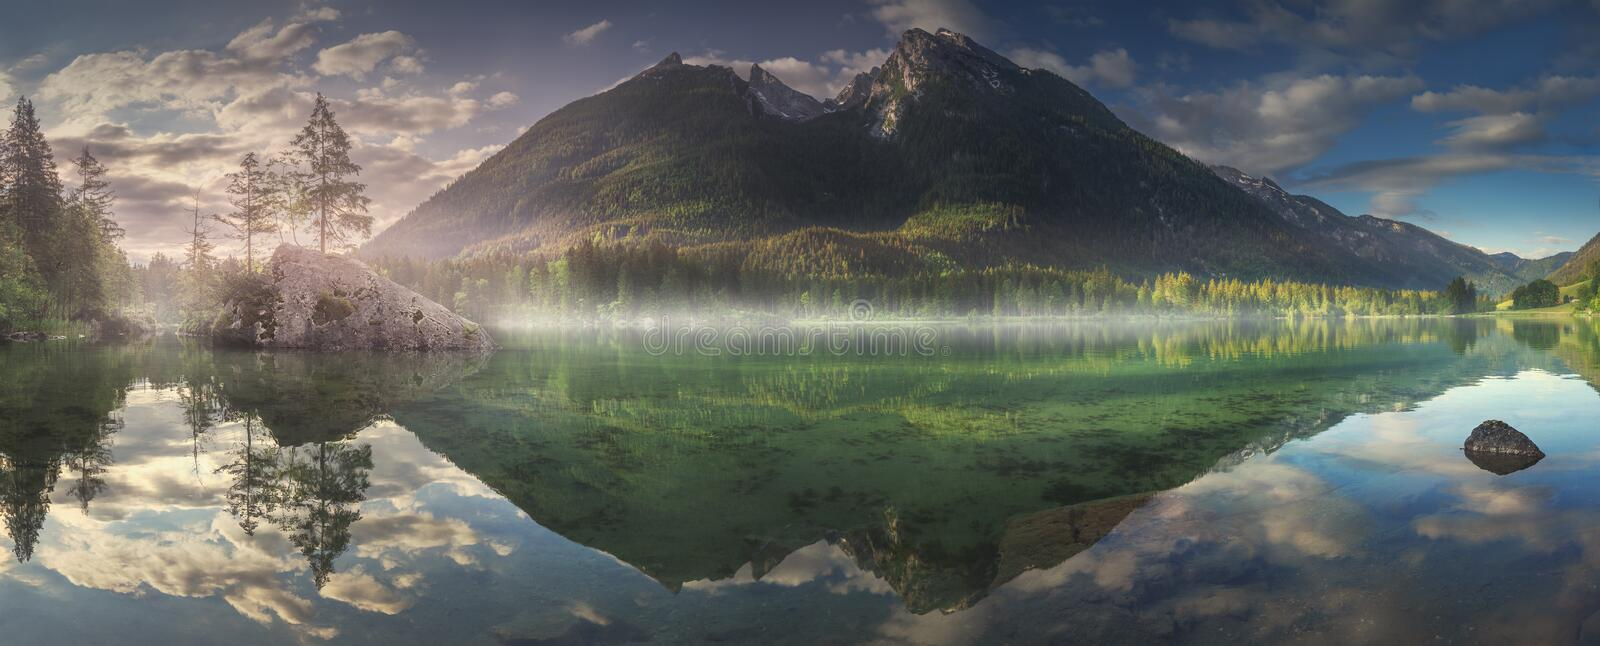 View of Hintersee lake in Bavarian Alps, Germany royalty free stock images